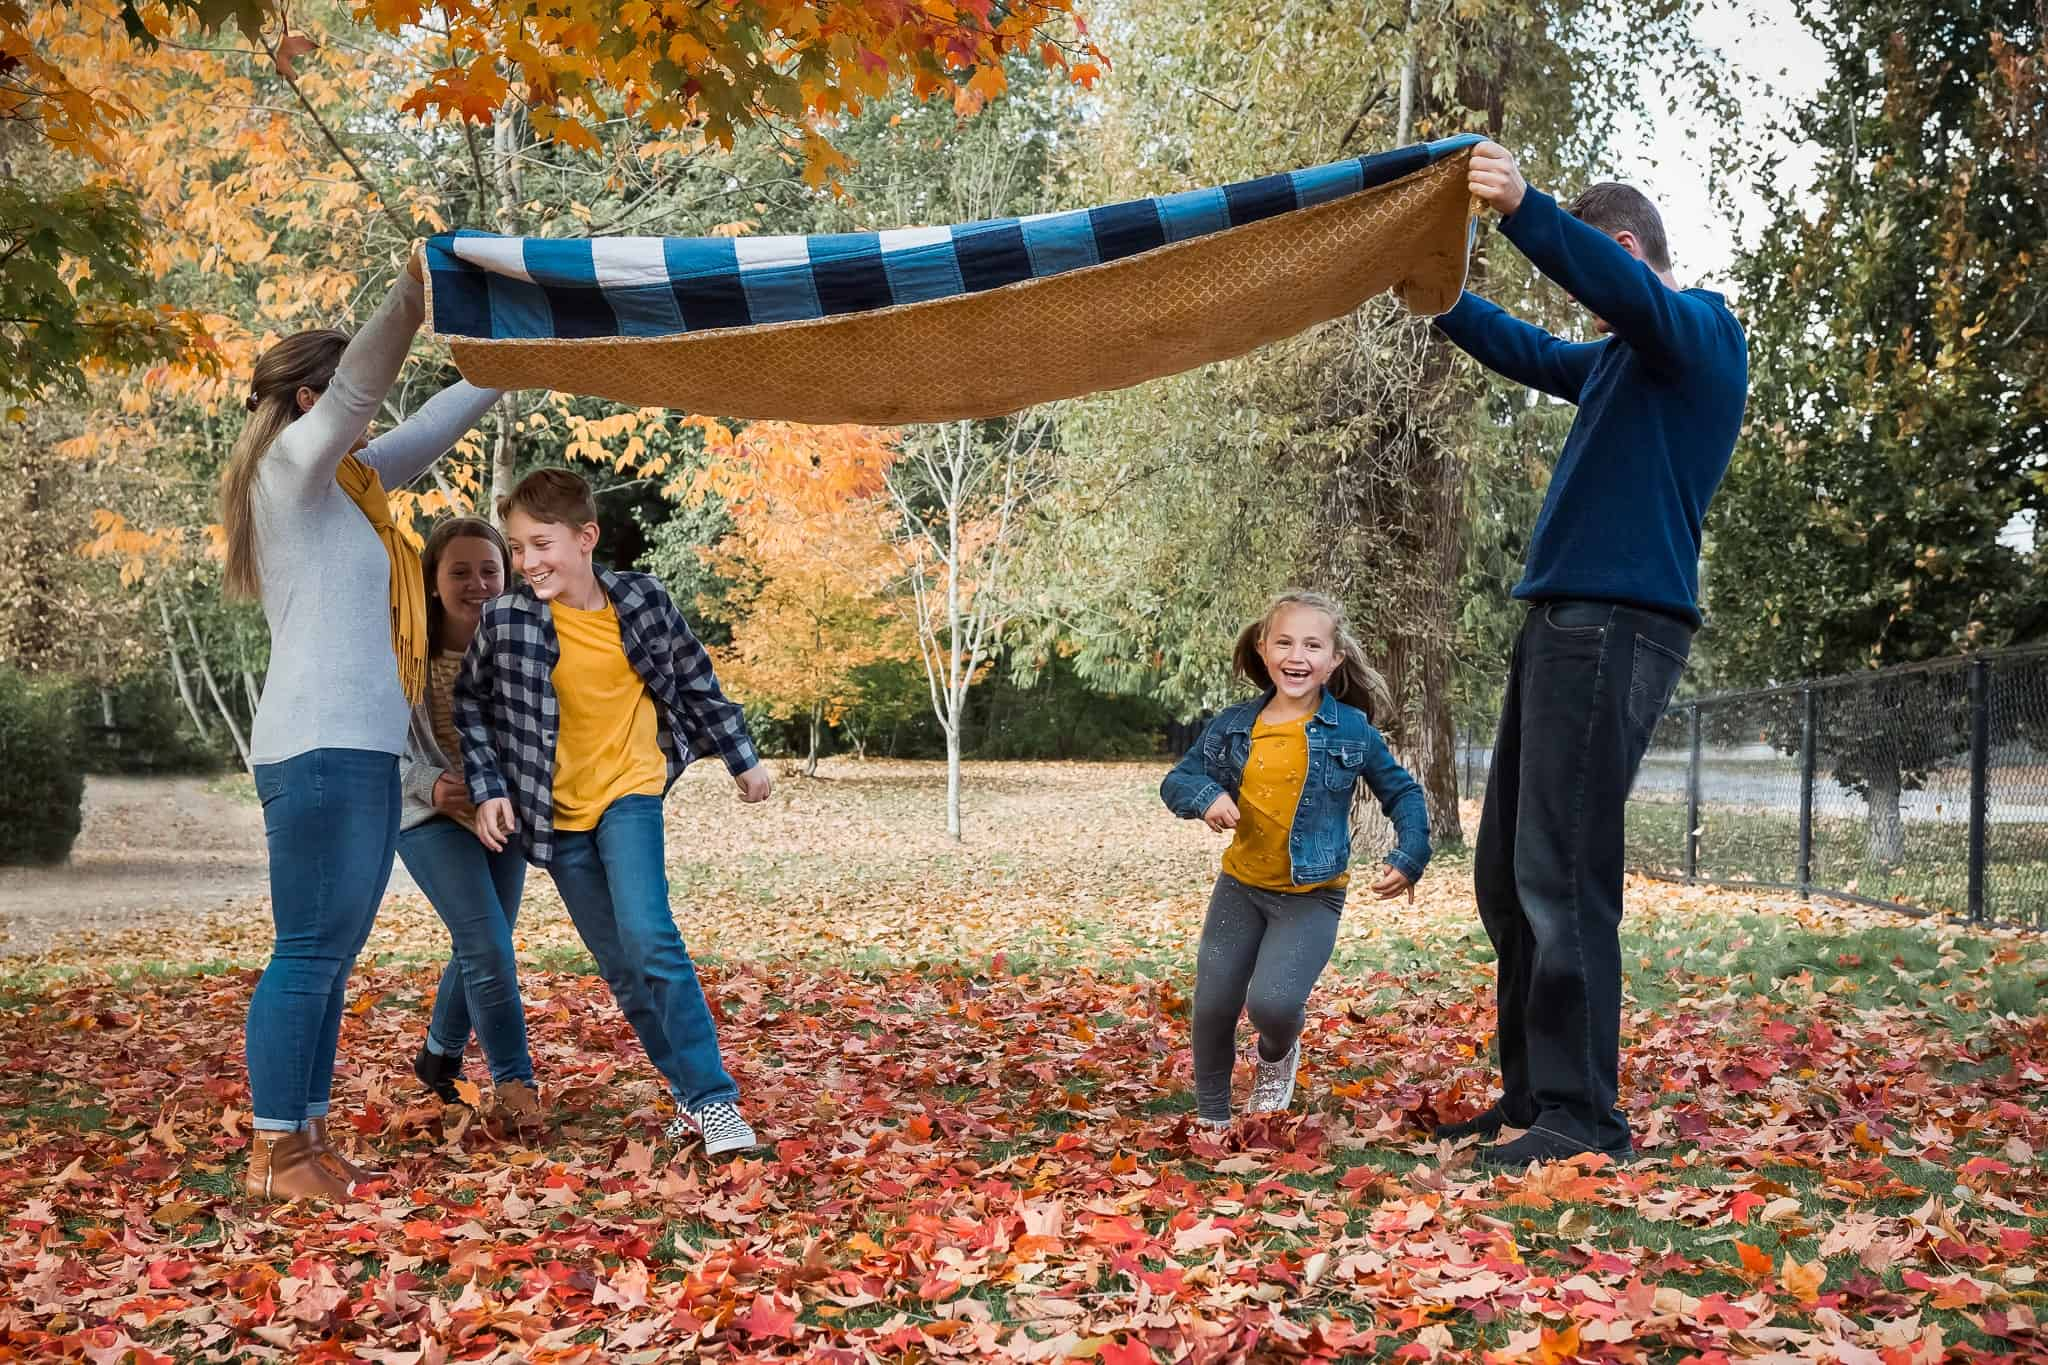 family running under a blanket in autumn leaves